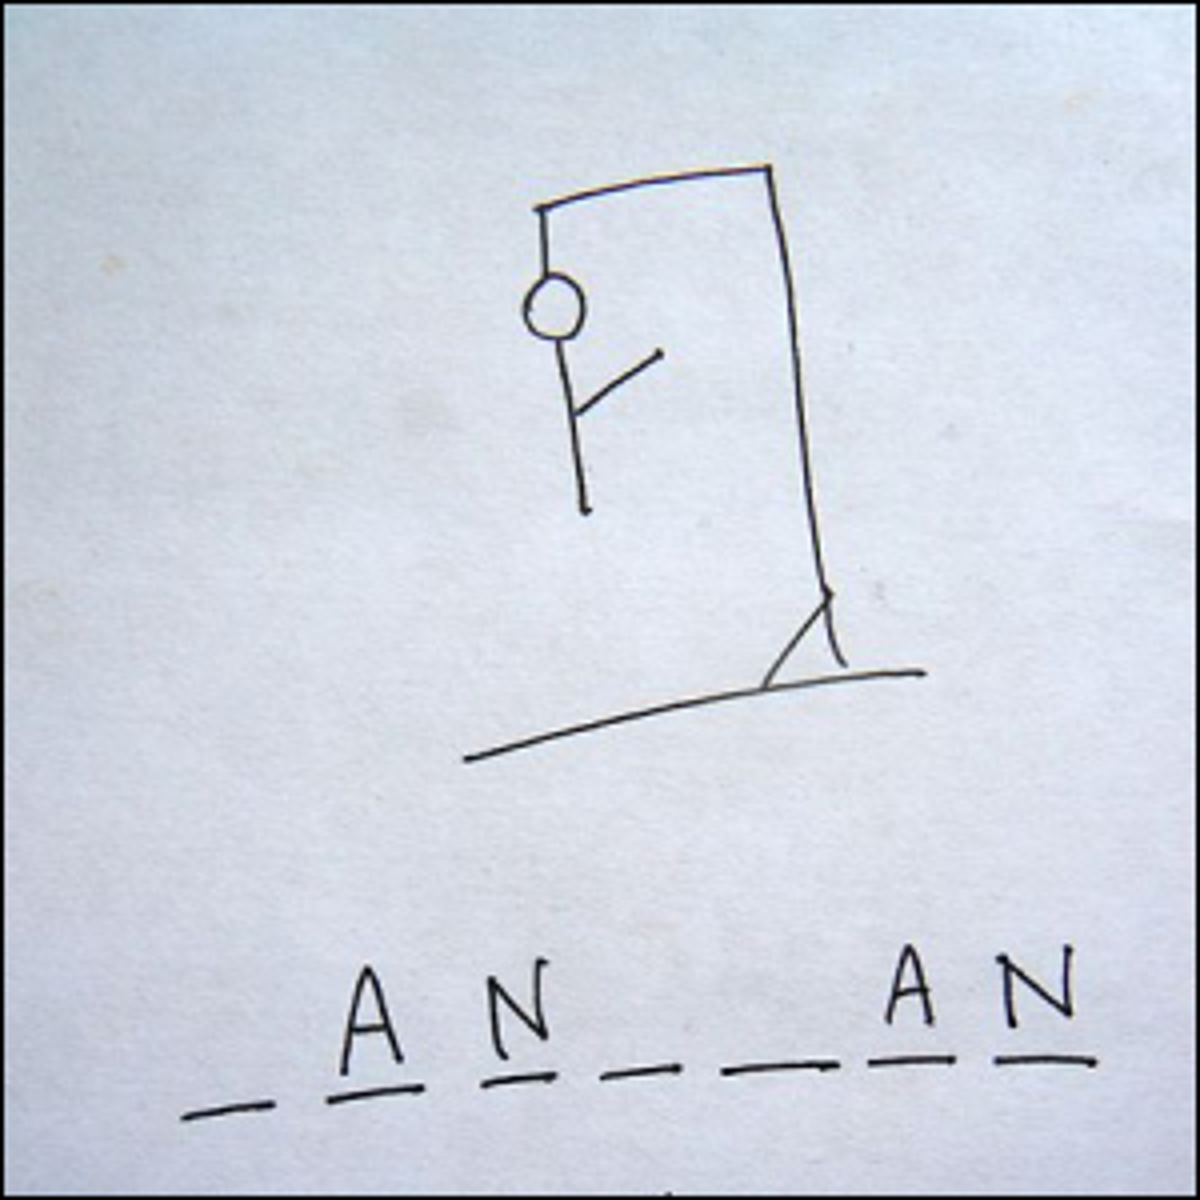 A partially finished pen-and-paper game of Hangman.